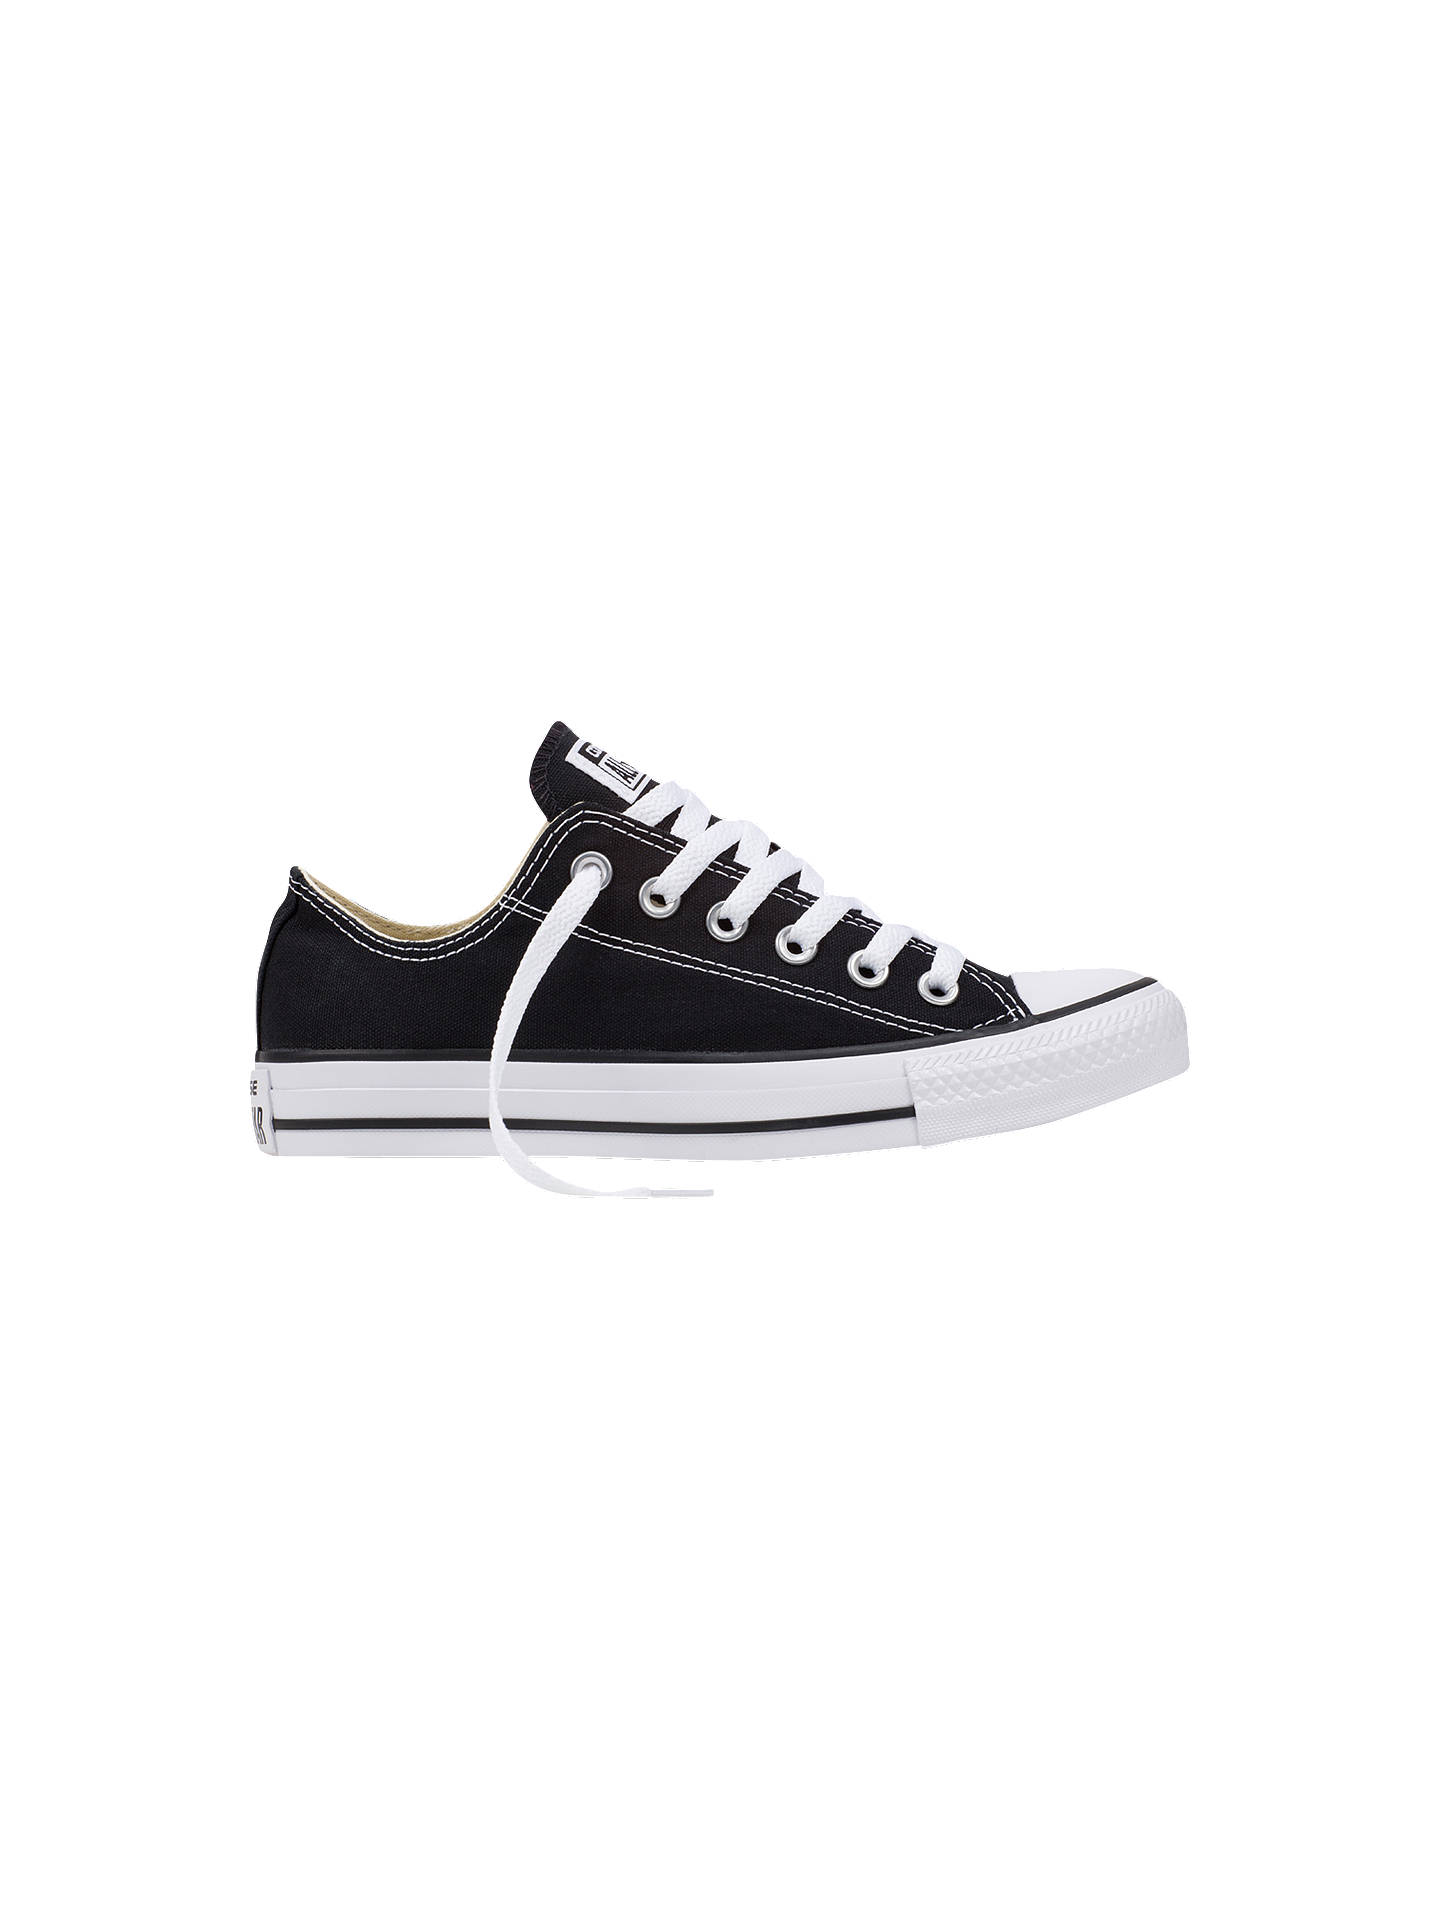 d8ff9130cc5a Converse Chuck Taylor All Star Ox Trainers at John Lewis   Partners